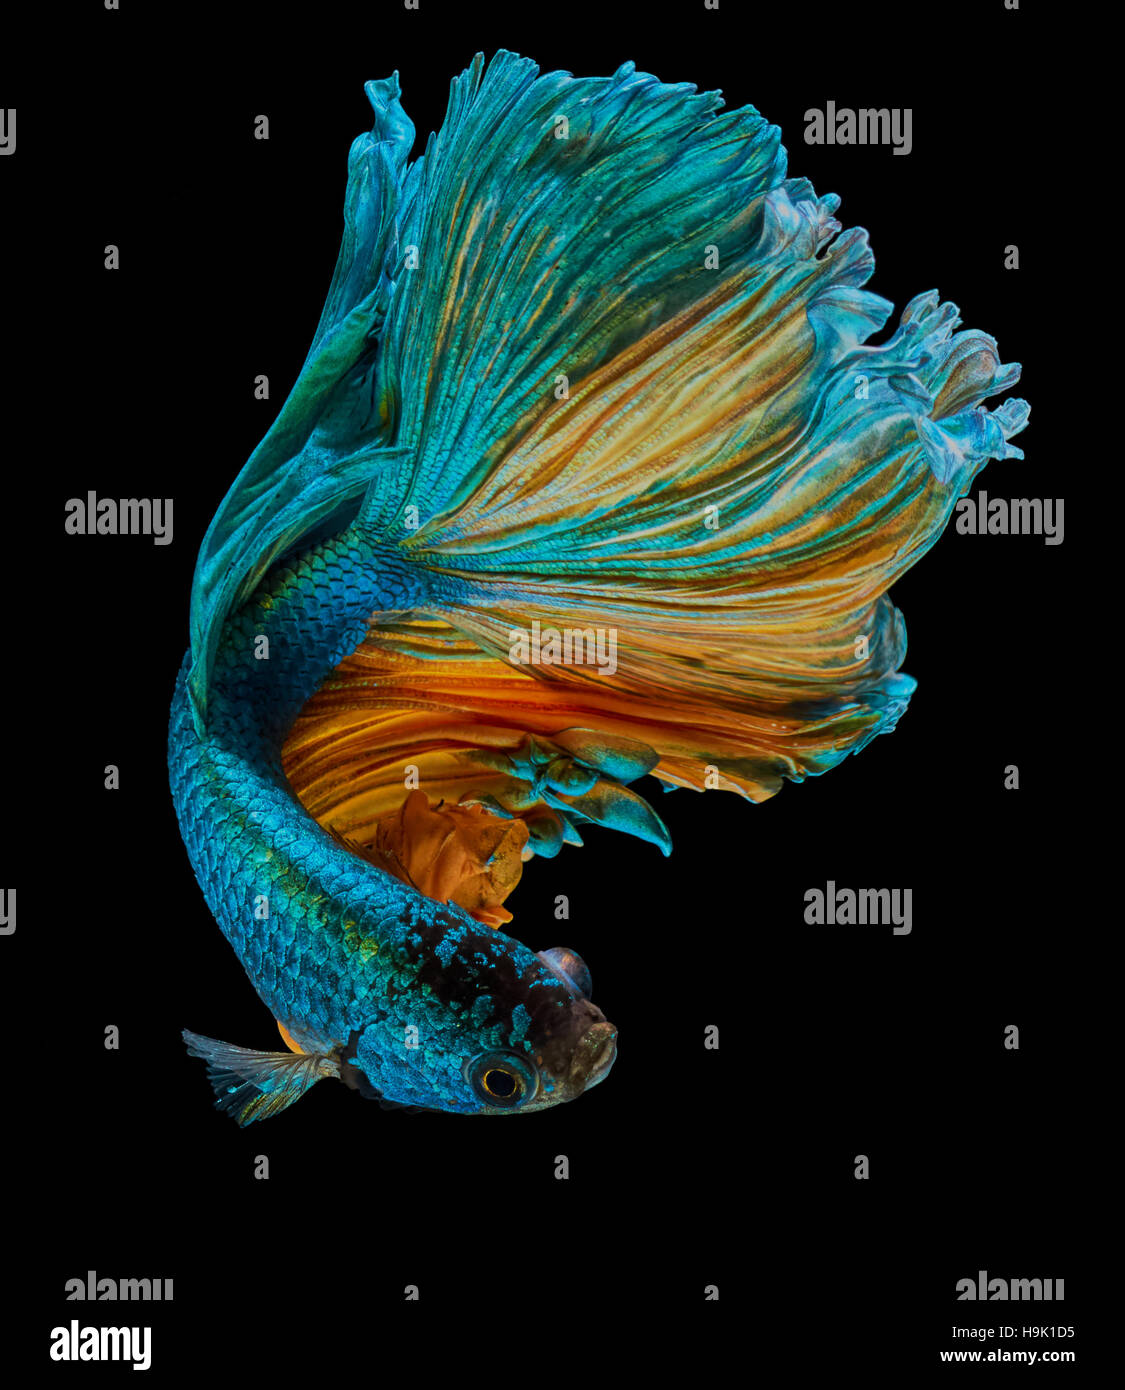 betta fish, siamese fighting fish 'Half moon' isolated on black background - Stock Image